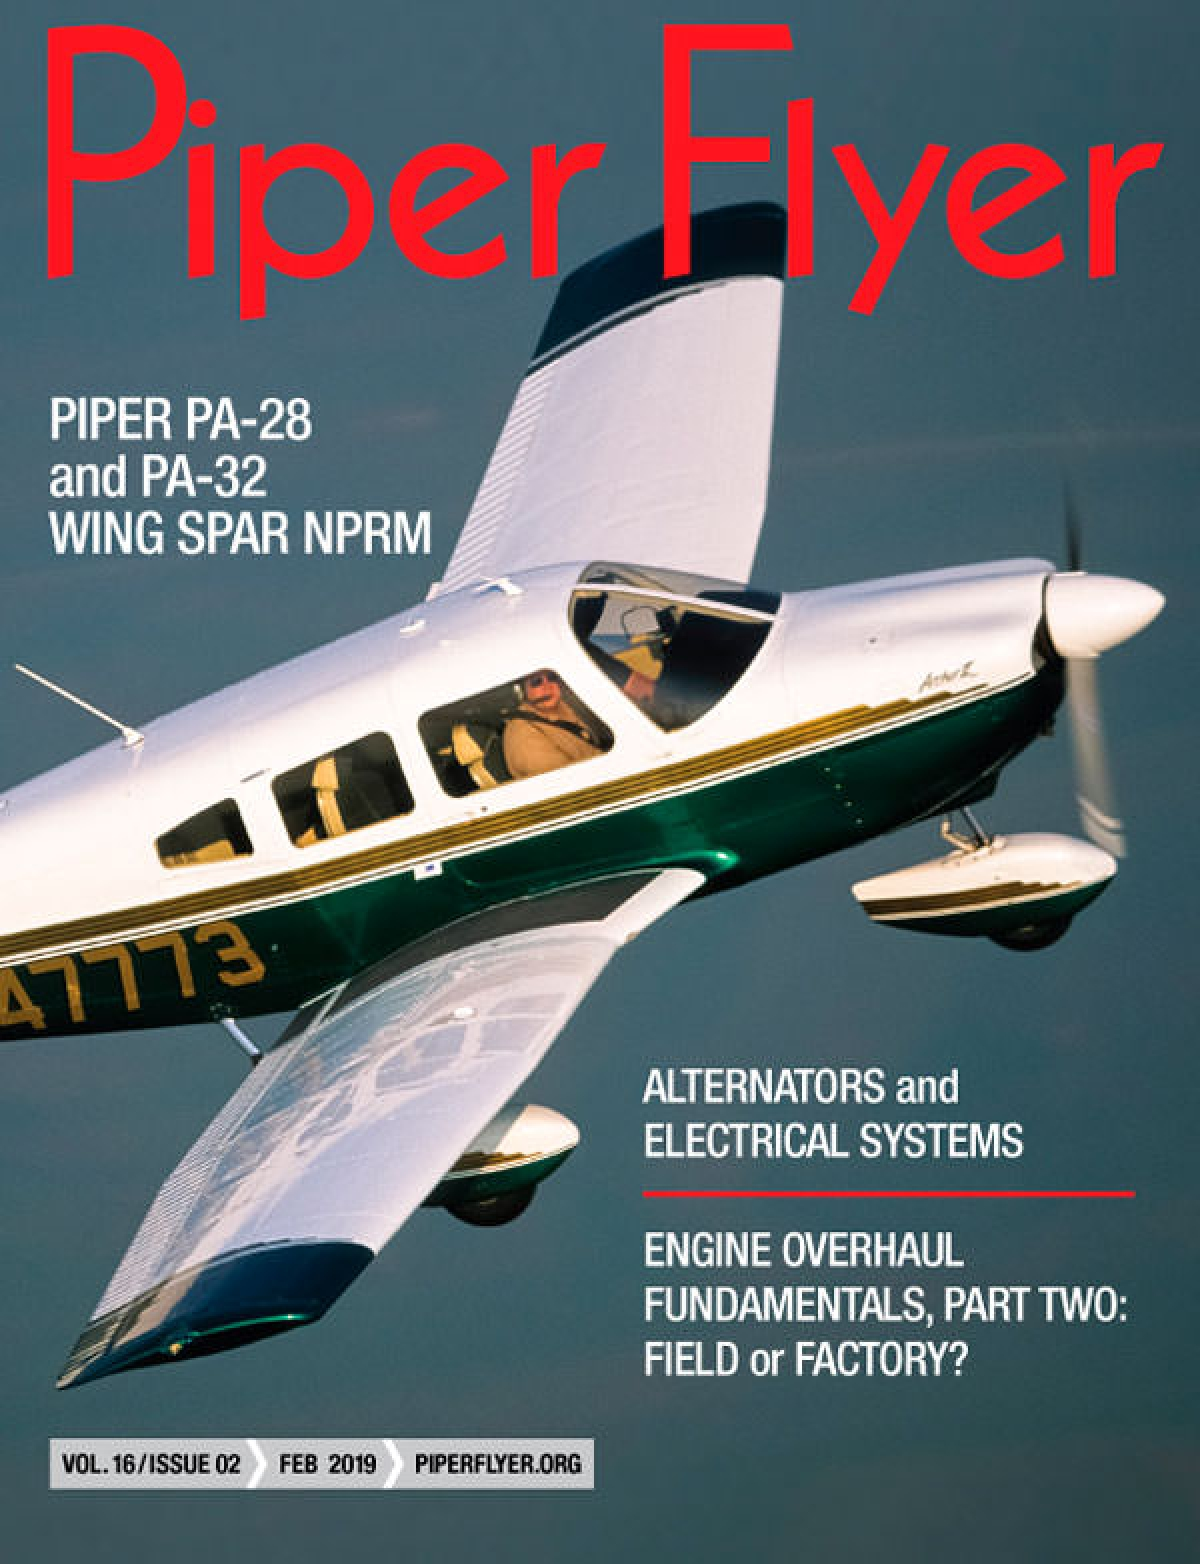 FEBRUARY 2019 PIPER FLYER MAGAZINE